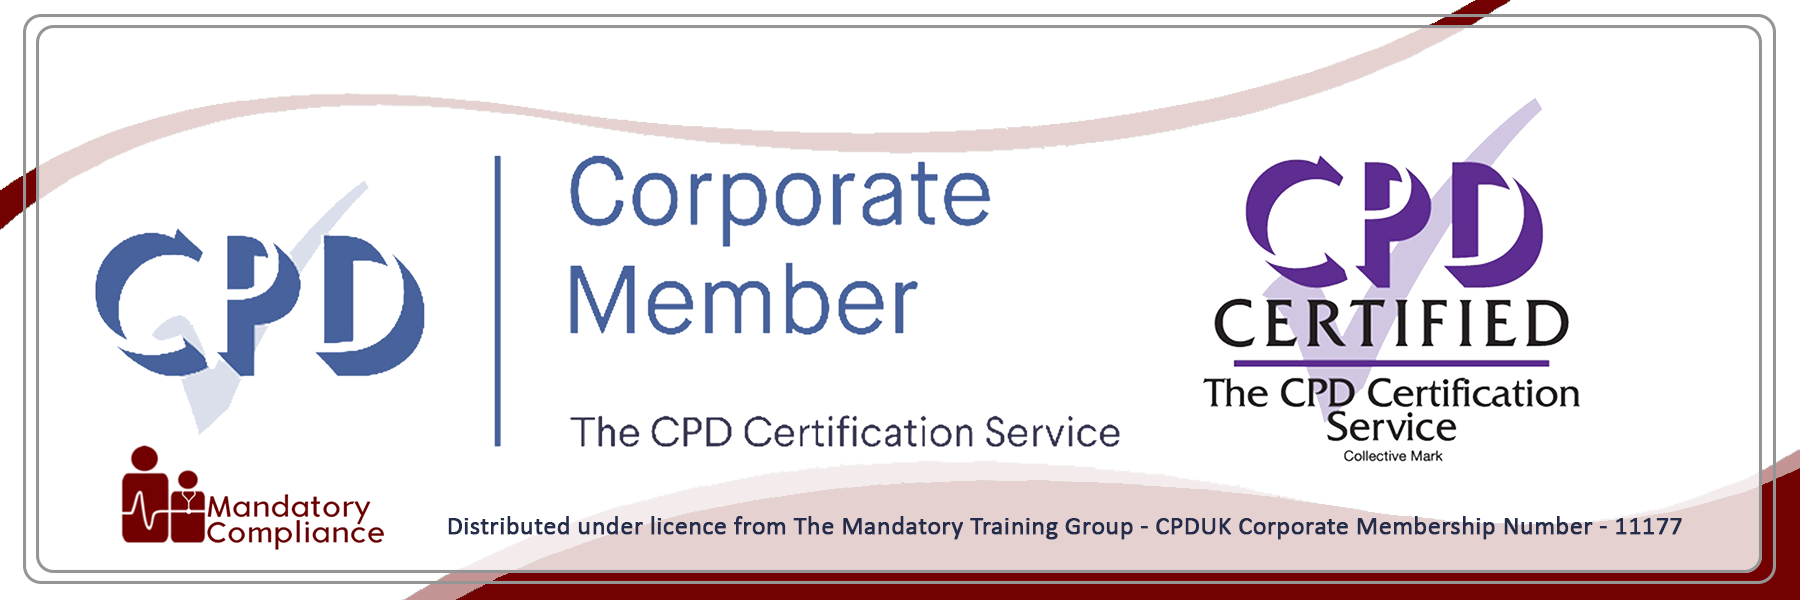 Millennial Onboarding Training - Online Training Course - CPDUK Accredited - Mandatory Compliance UK -